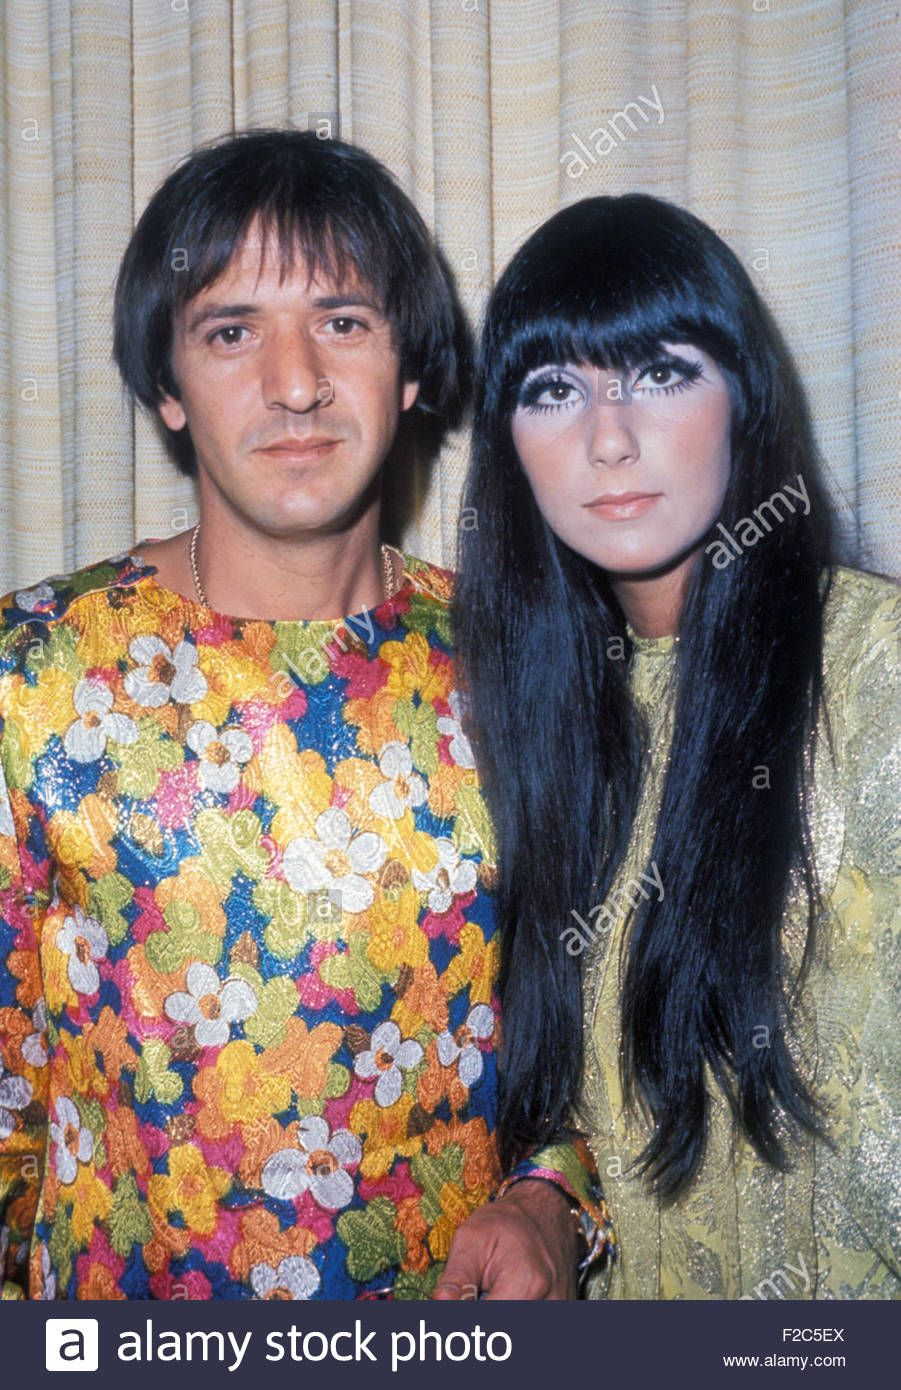 787847ce58e Download this stock image: SONNY AND CHER US vocal duo about 1966 - F2C5EX  from Alamy's library of millions of high resolution stock photos, ...